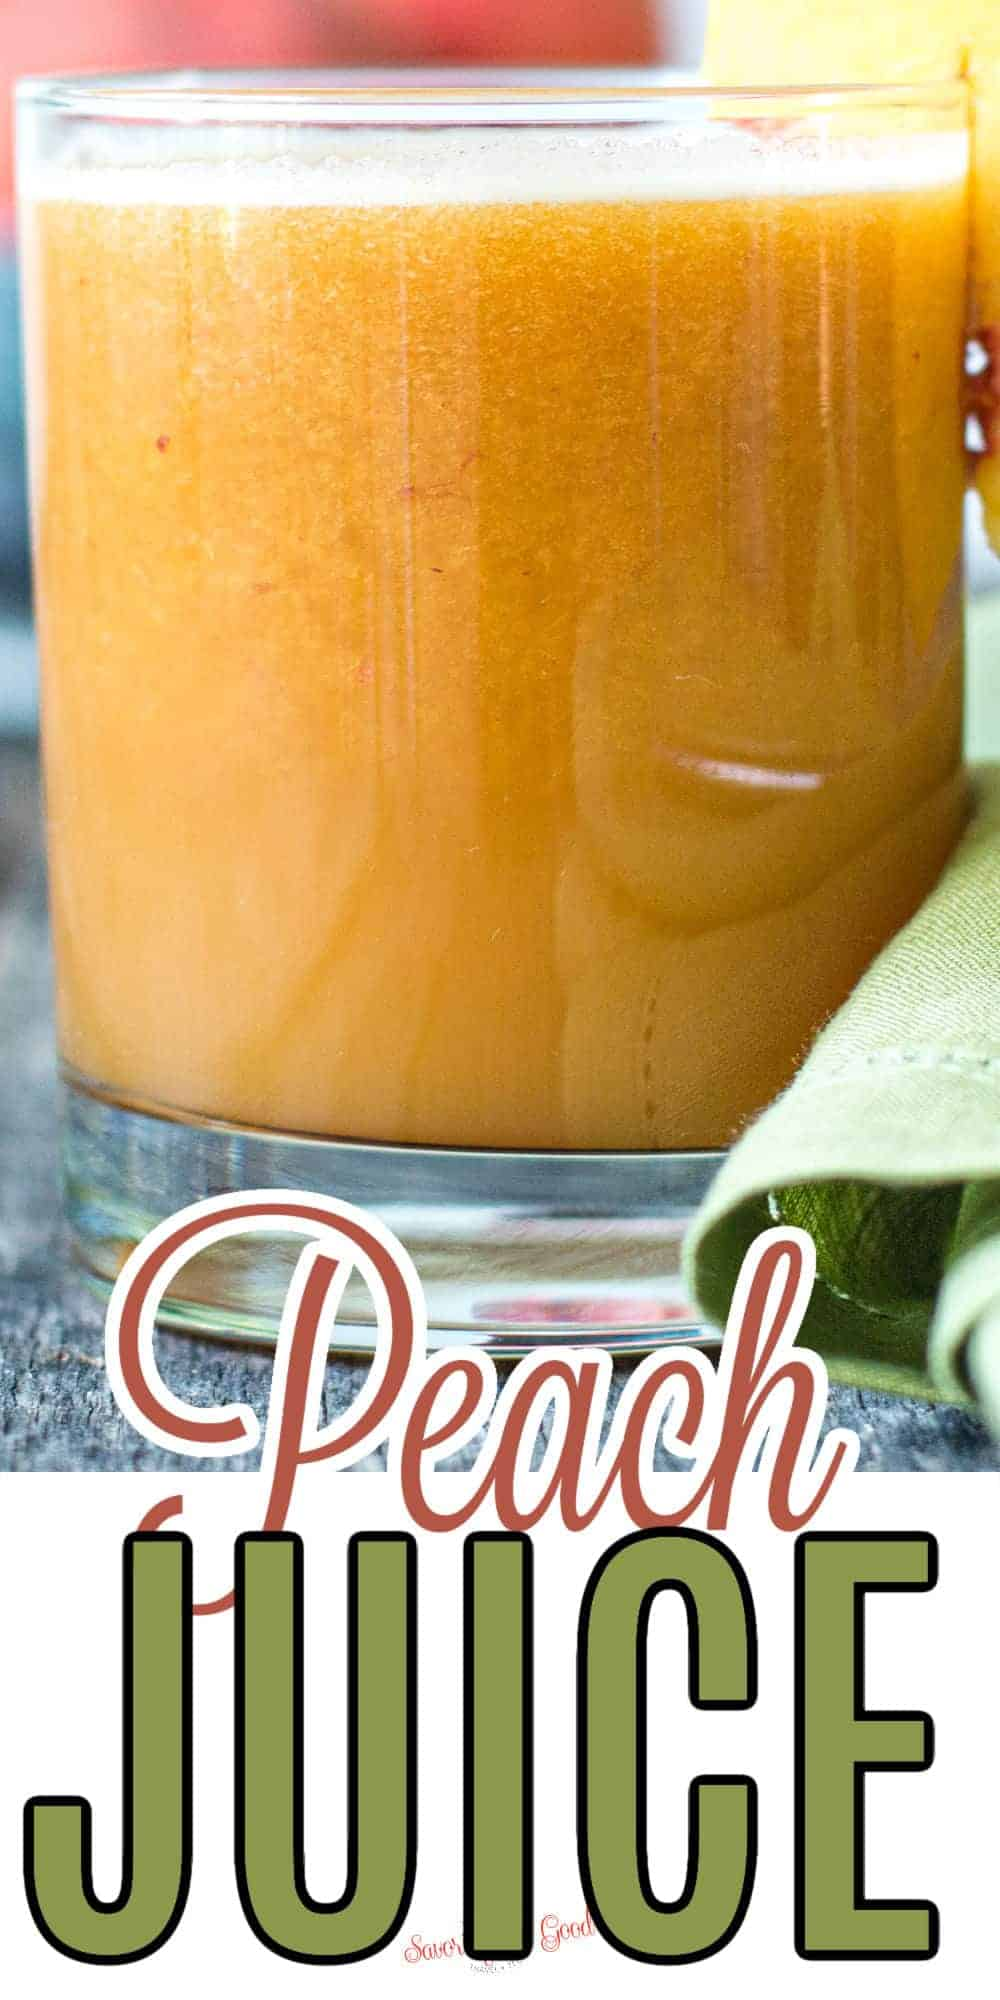 peach juice pinterest image 2 with text call out at the bottom of image